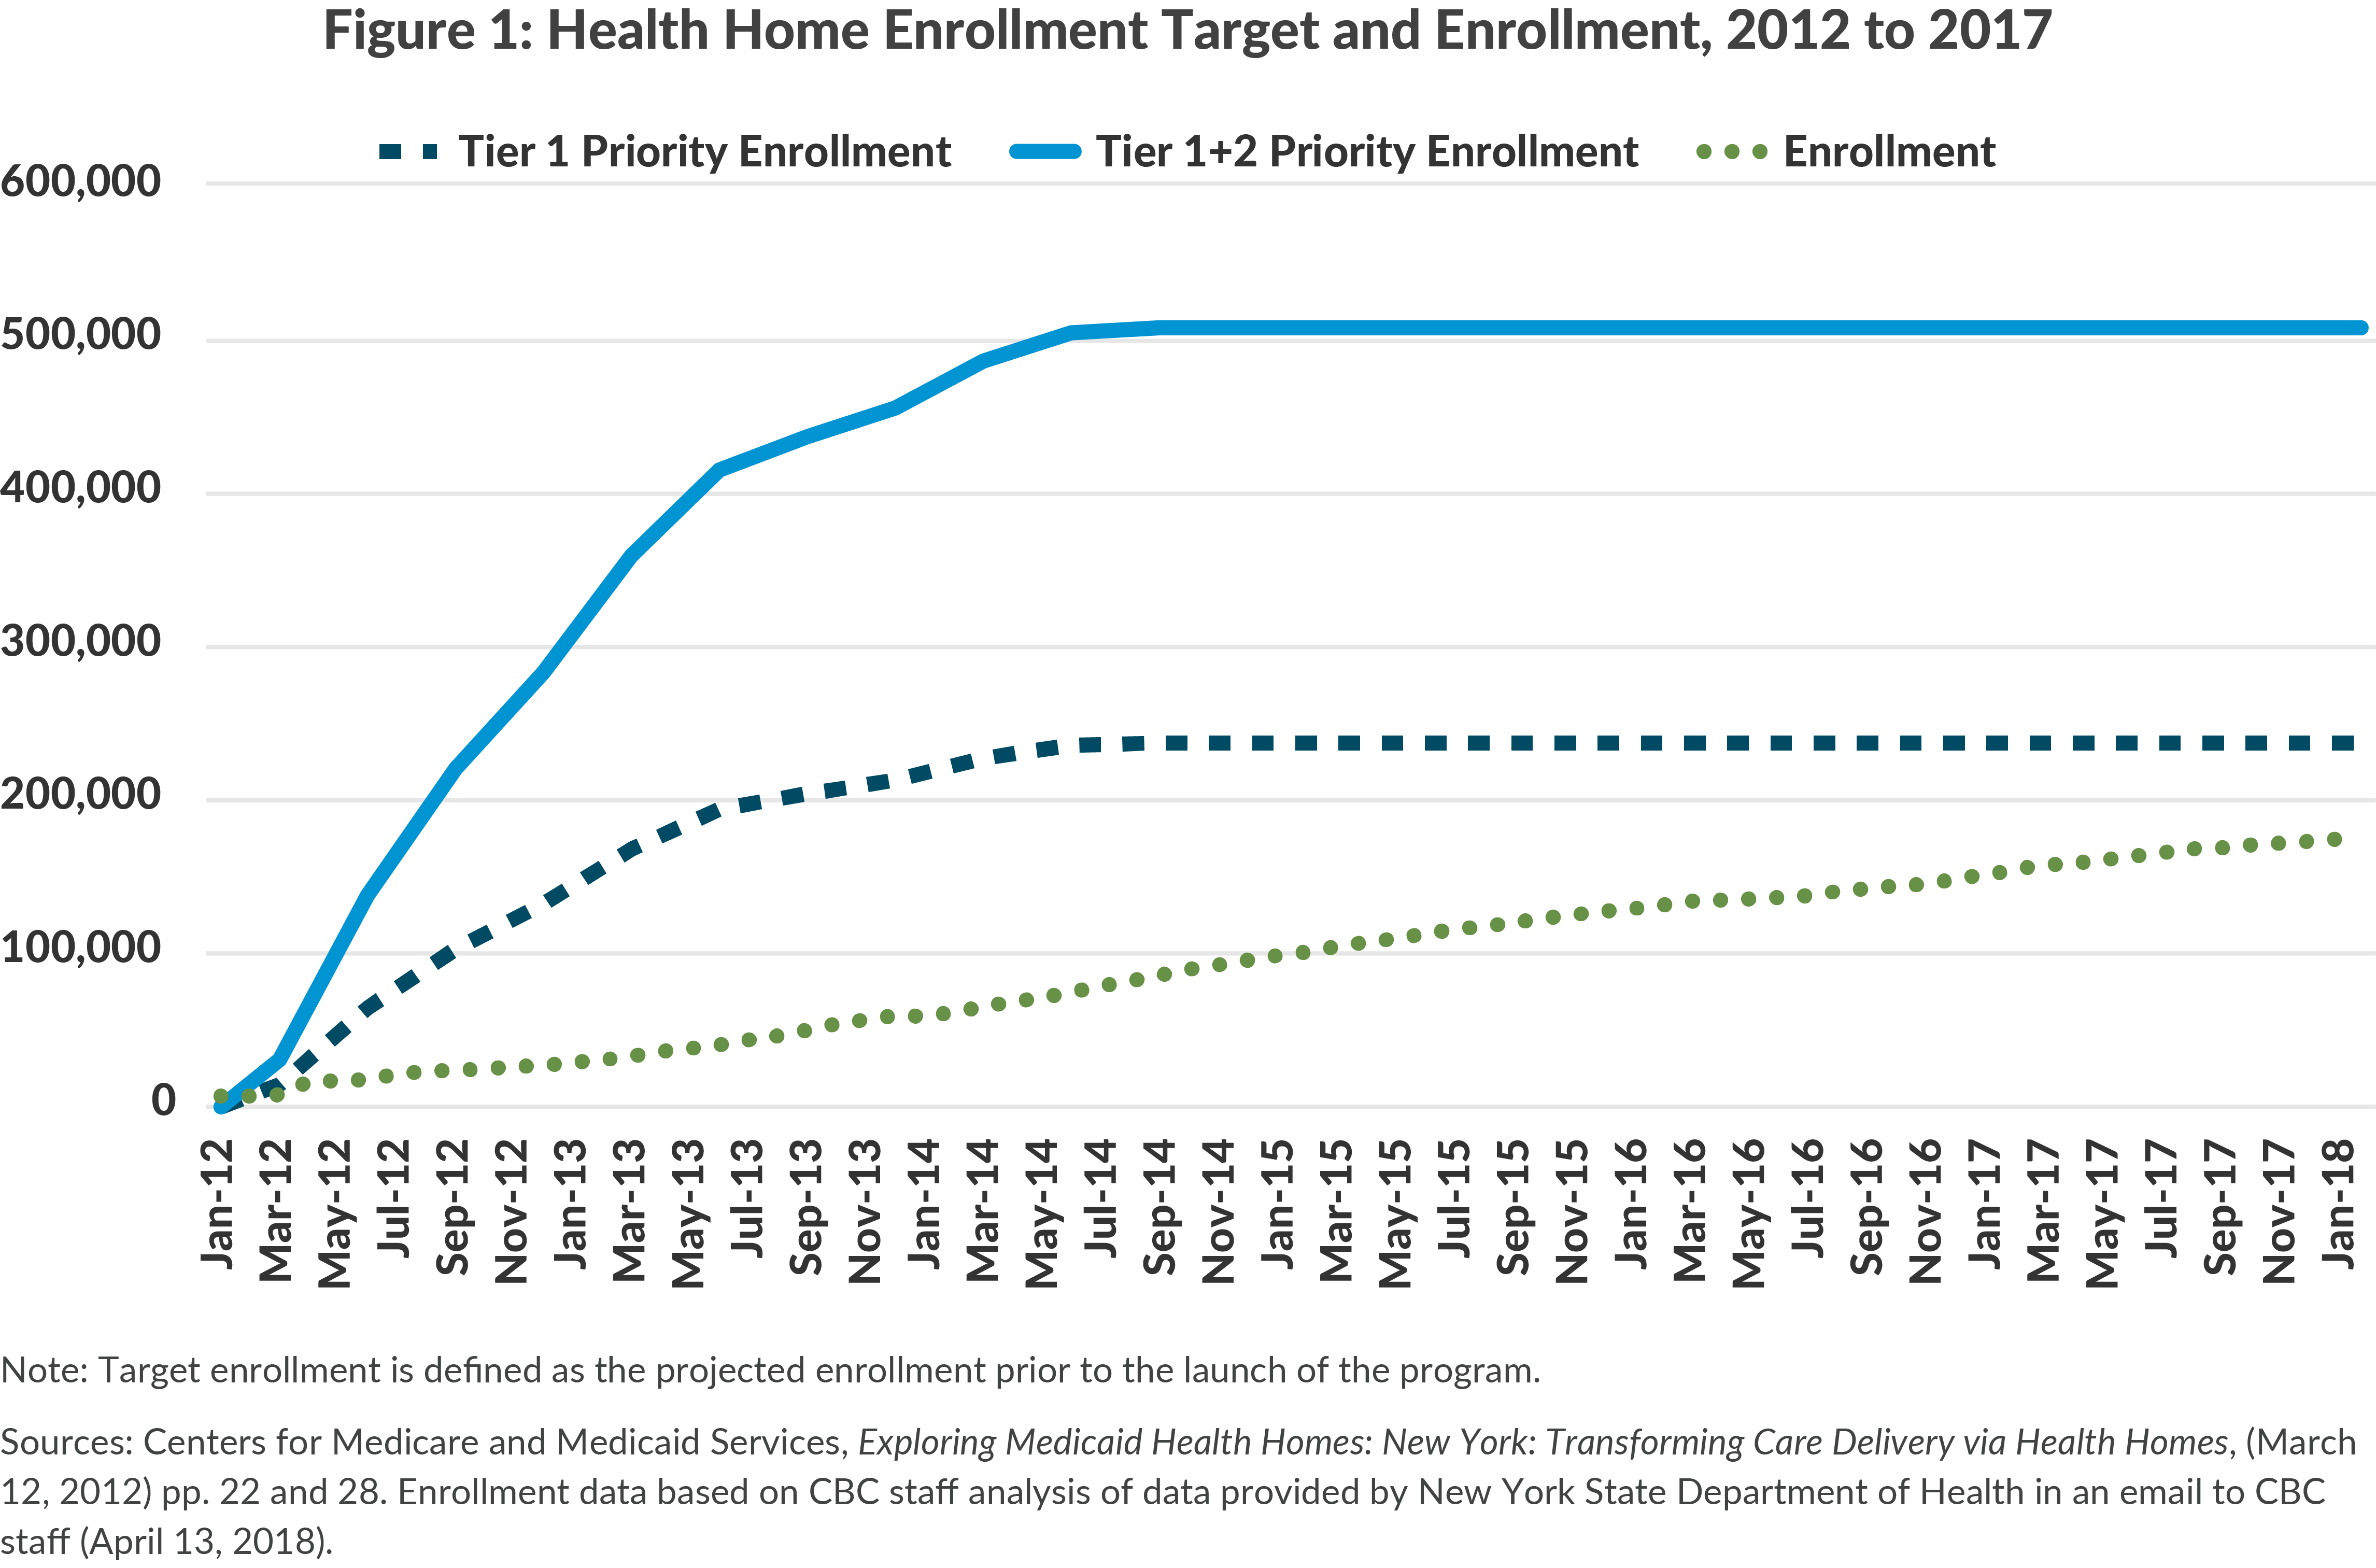 Figure 1: Health Home Enrollment Target and Enrollment, 2012 to 2017